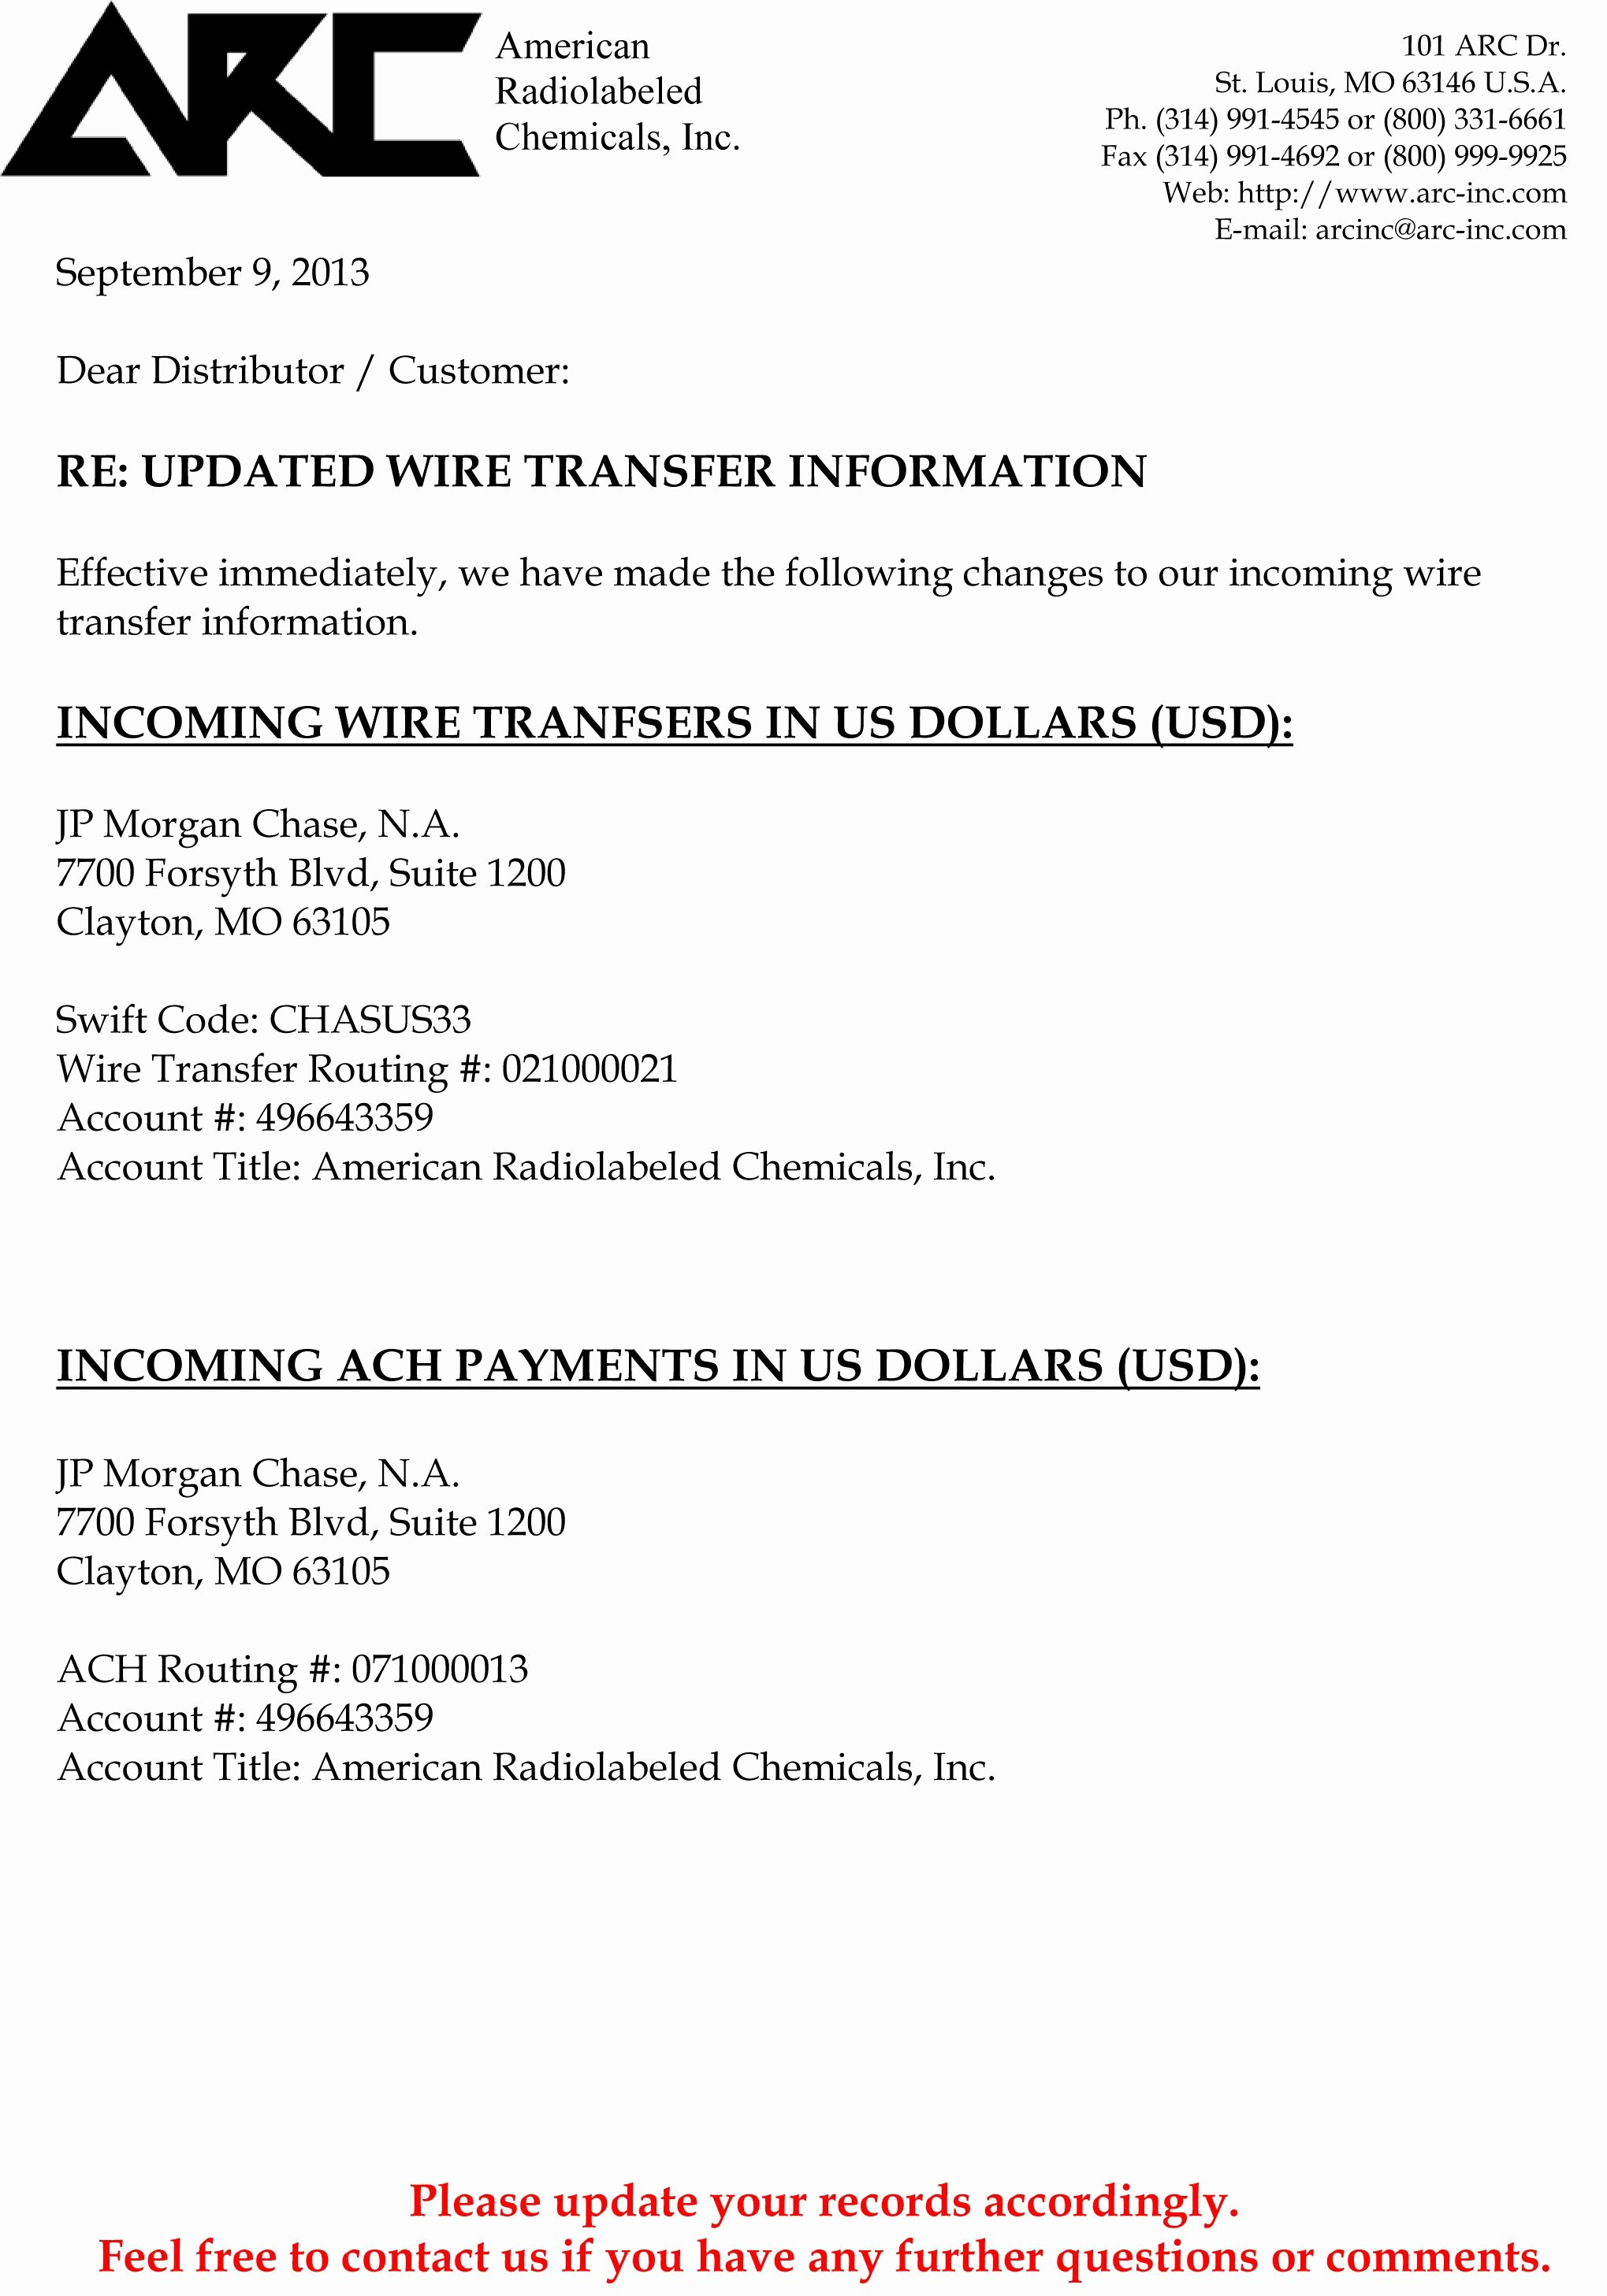 Wire Transfer Instructions Template New Click Here to View Wire Transfer and Ach Payment